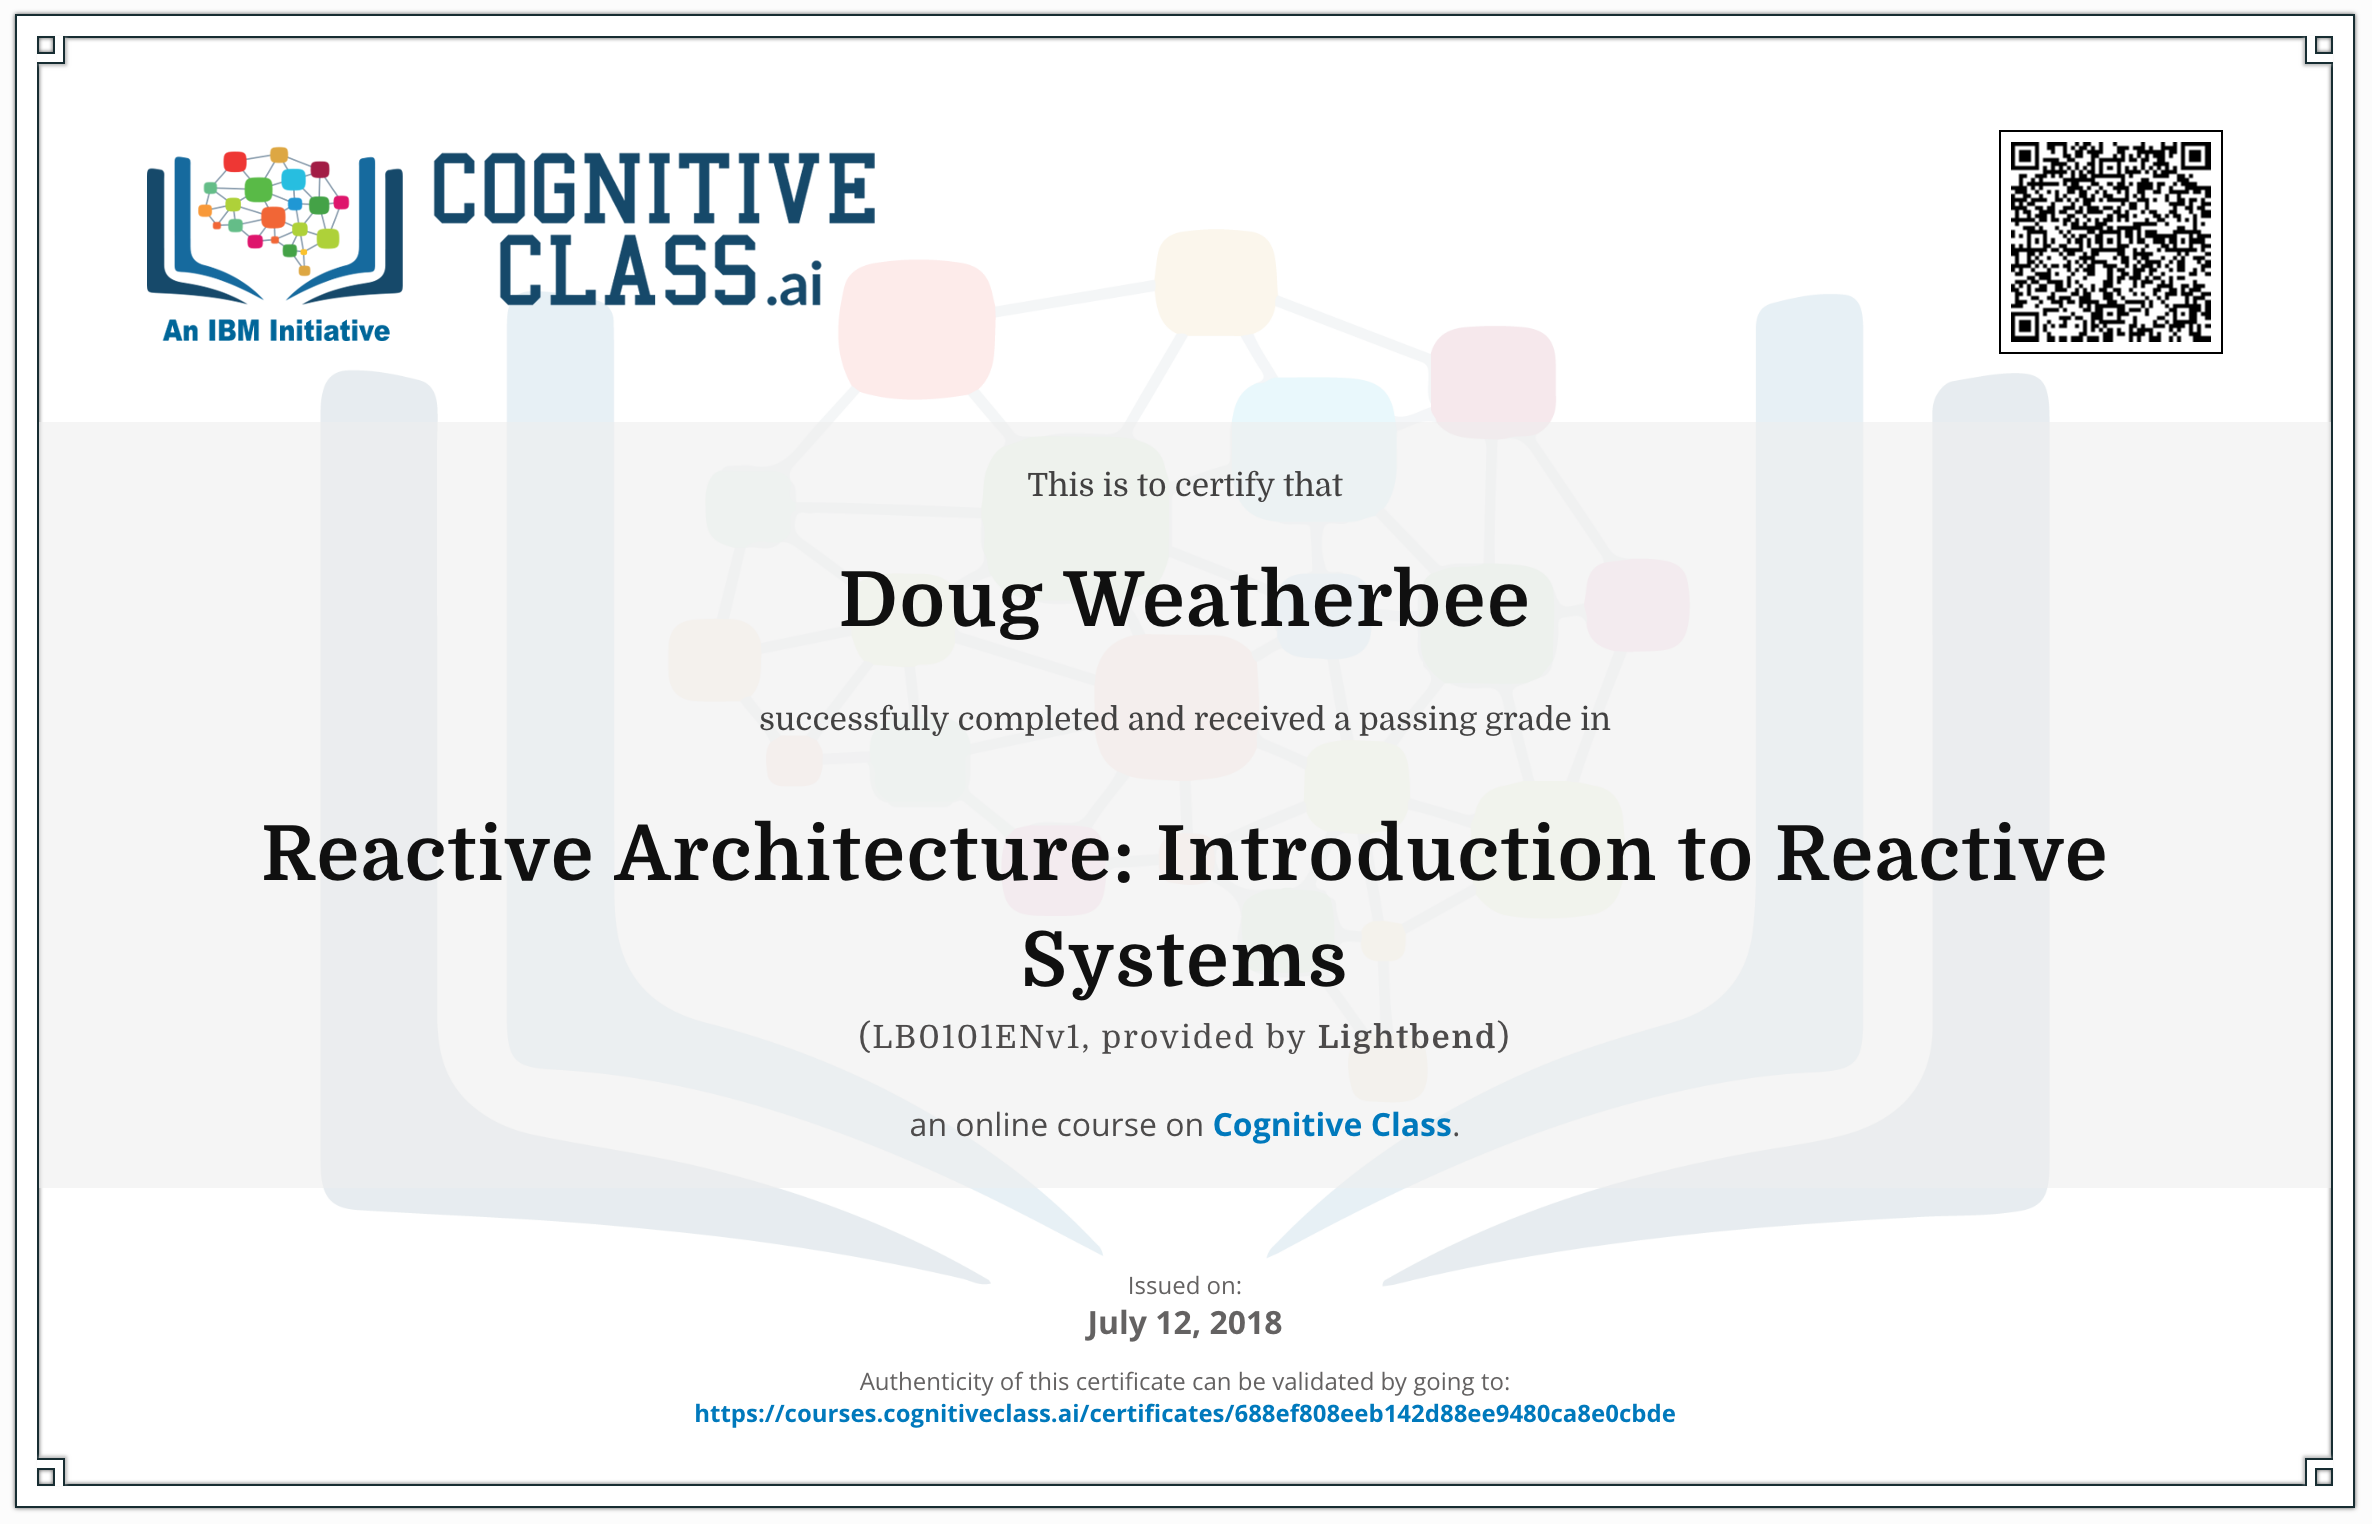 Learn Reactive Architecture For Free At Your Own Pace Lightbend